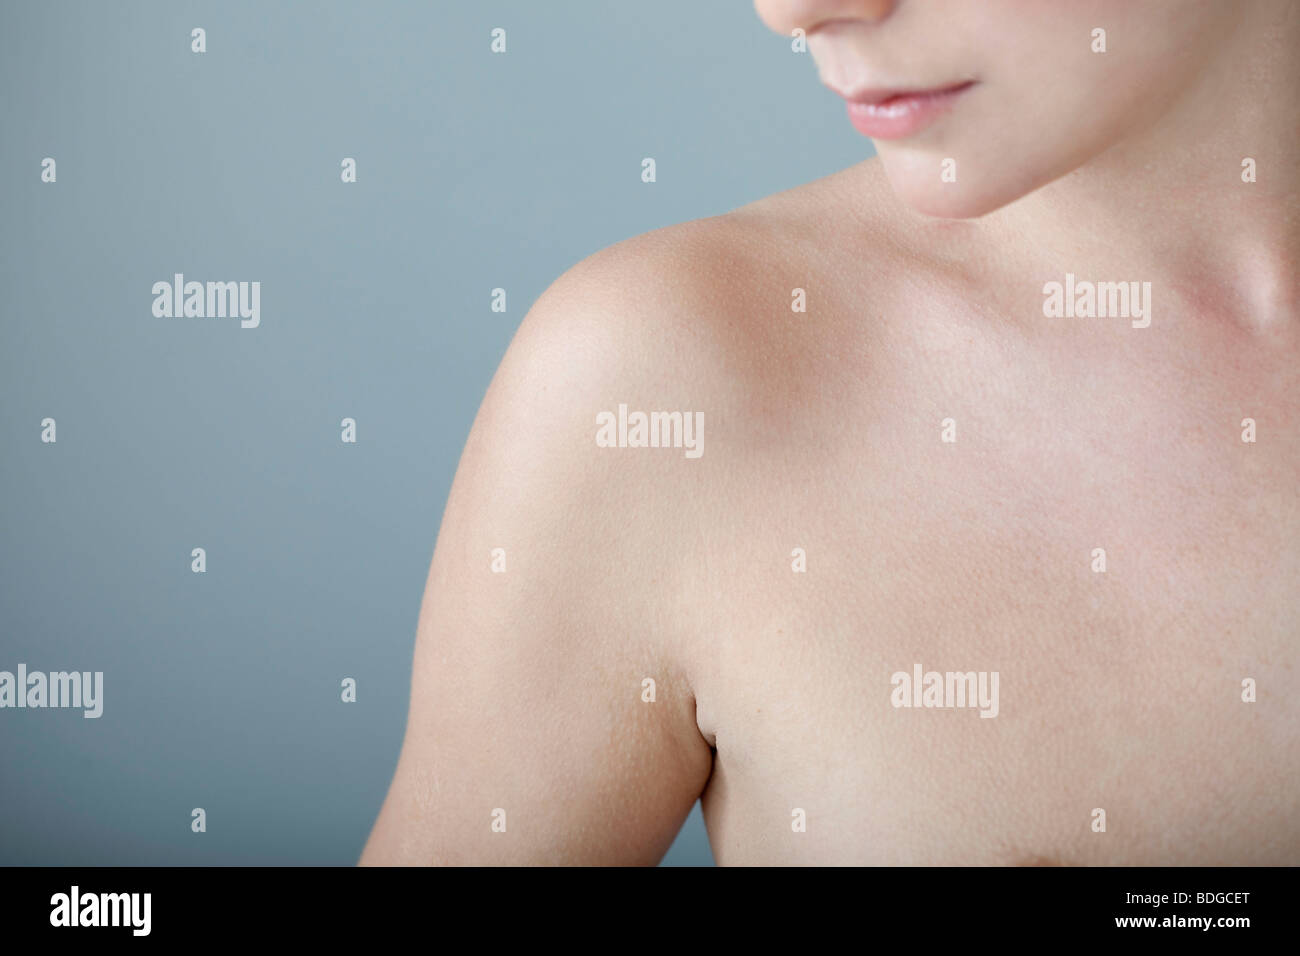 SHOULDER - Stock Image